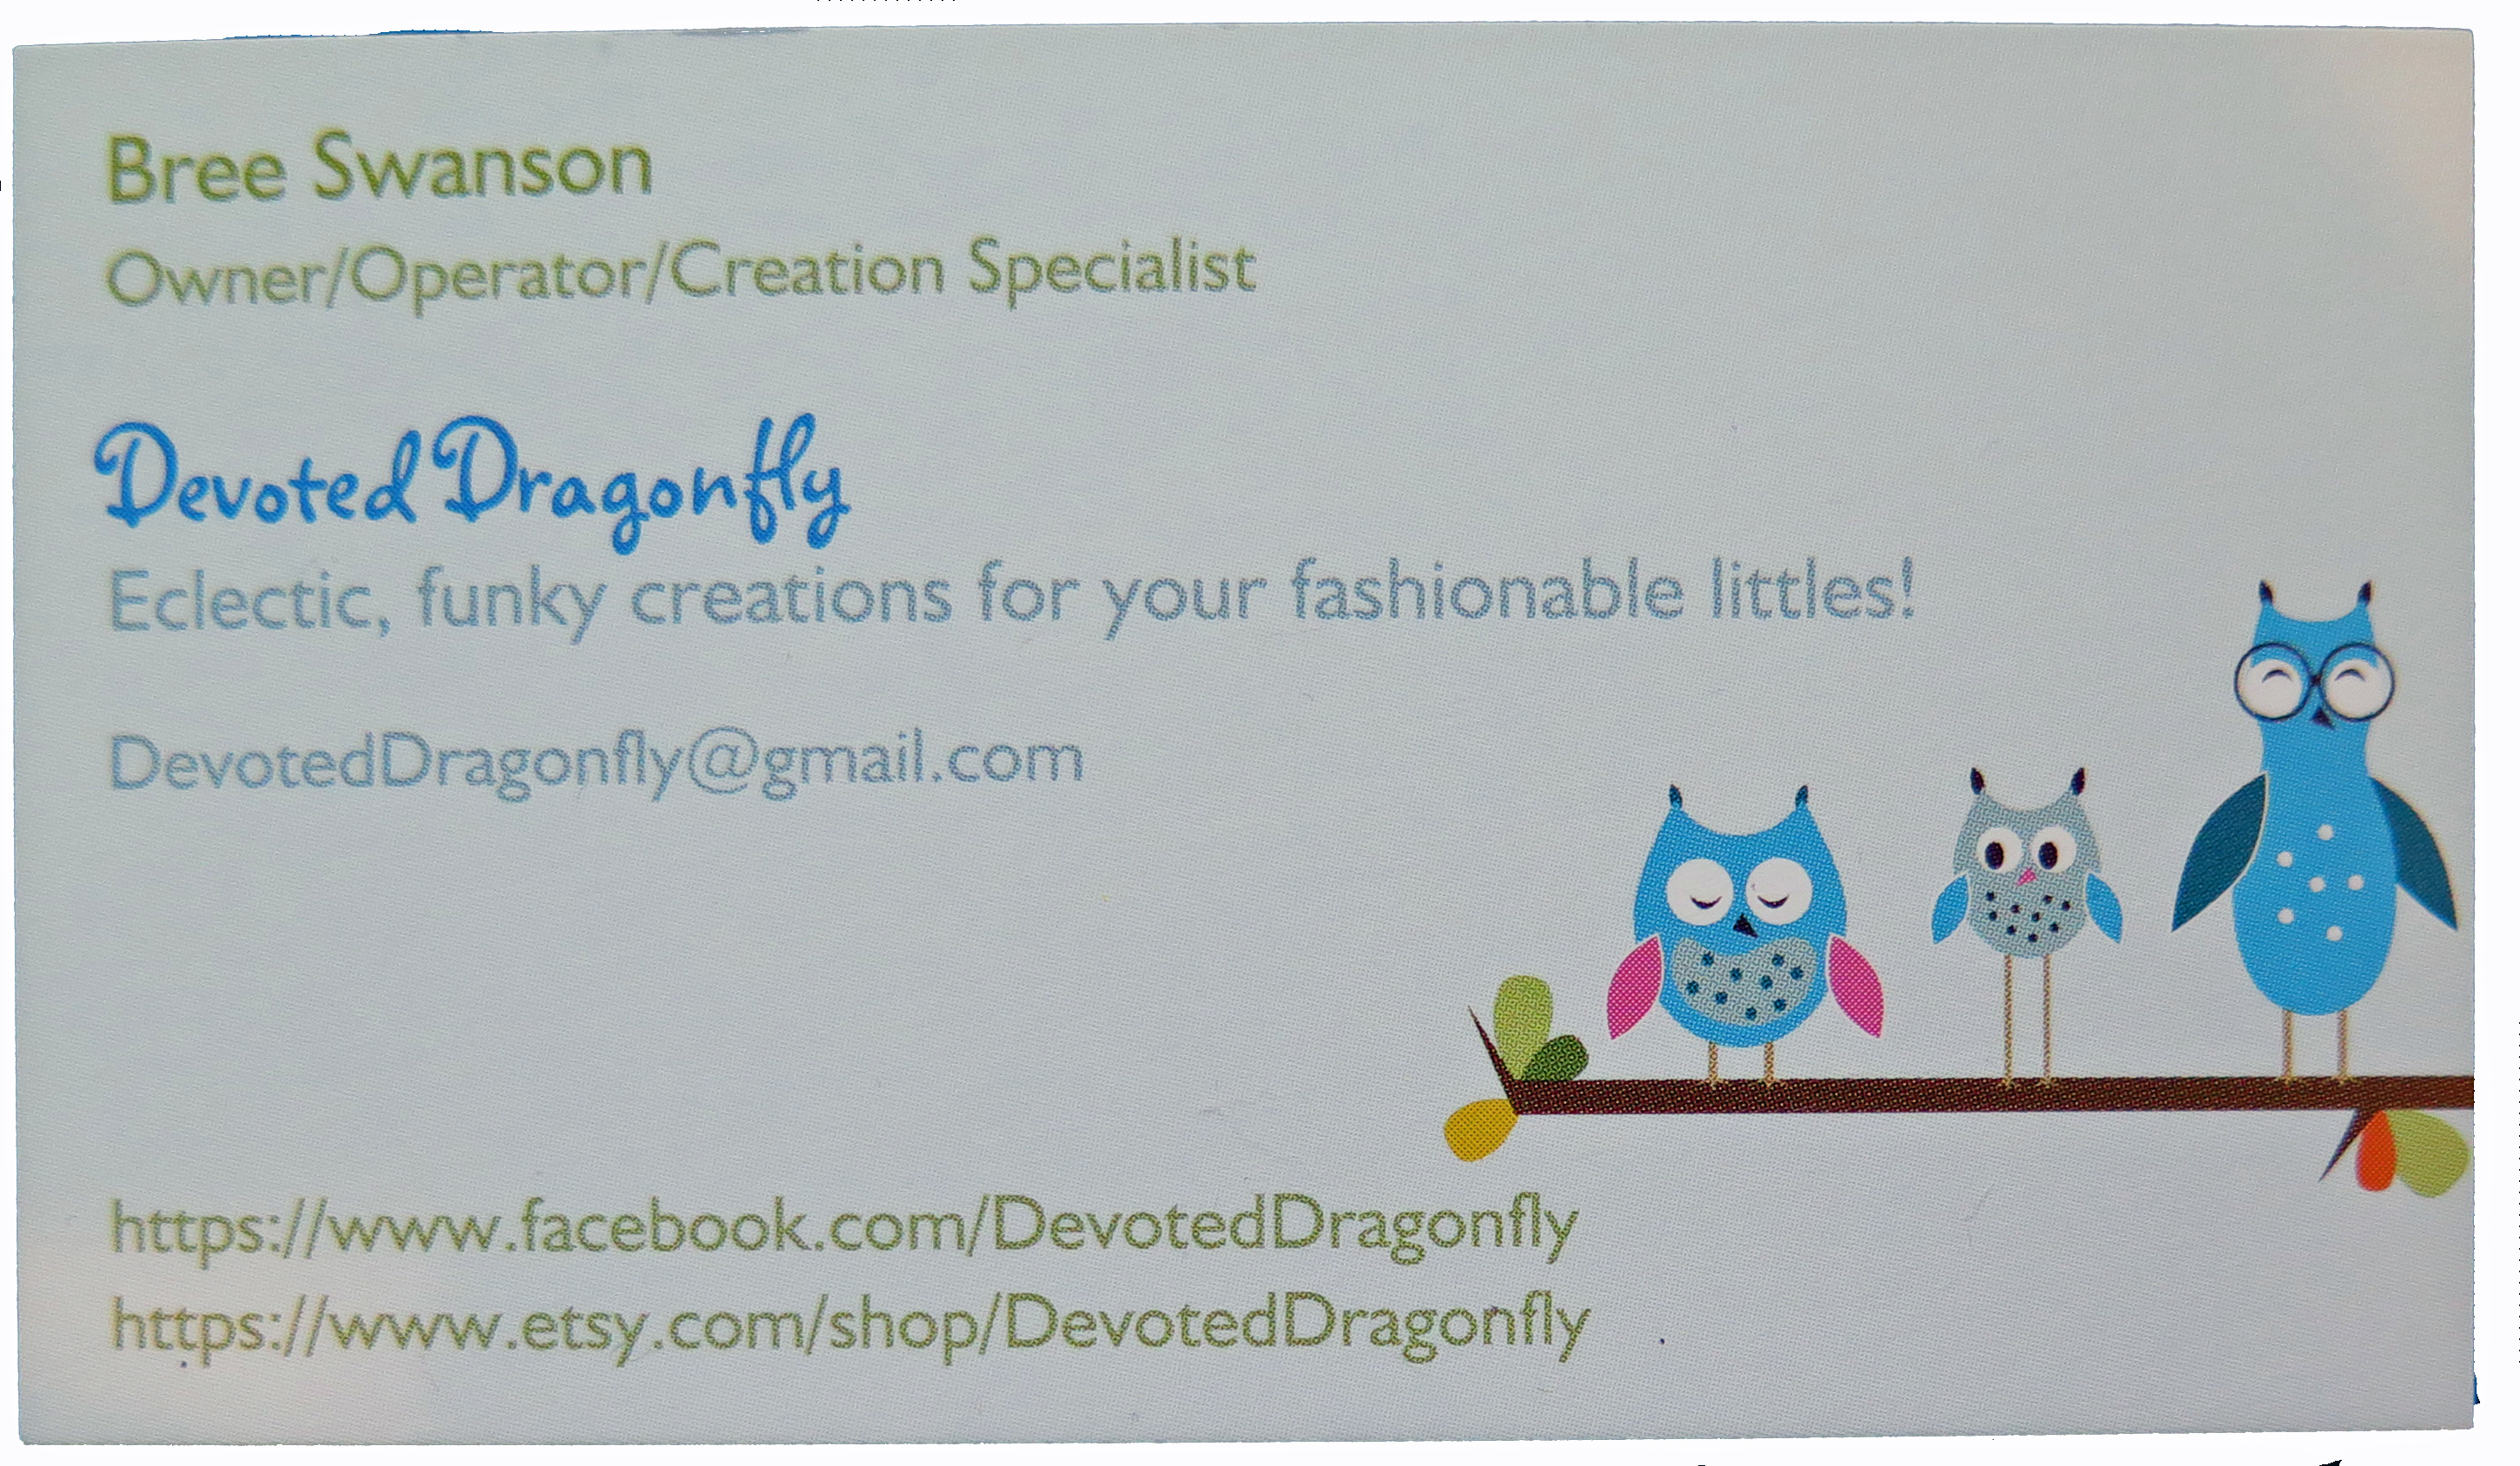 Devoted Dragonfly